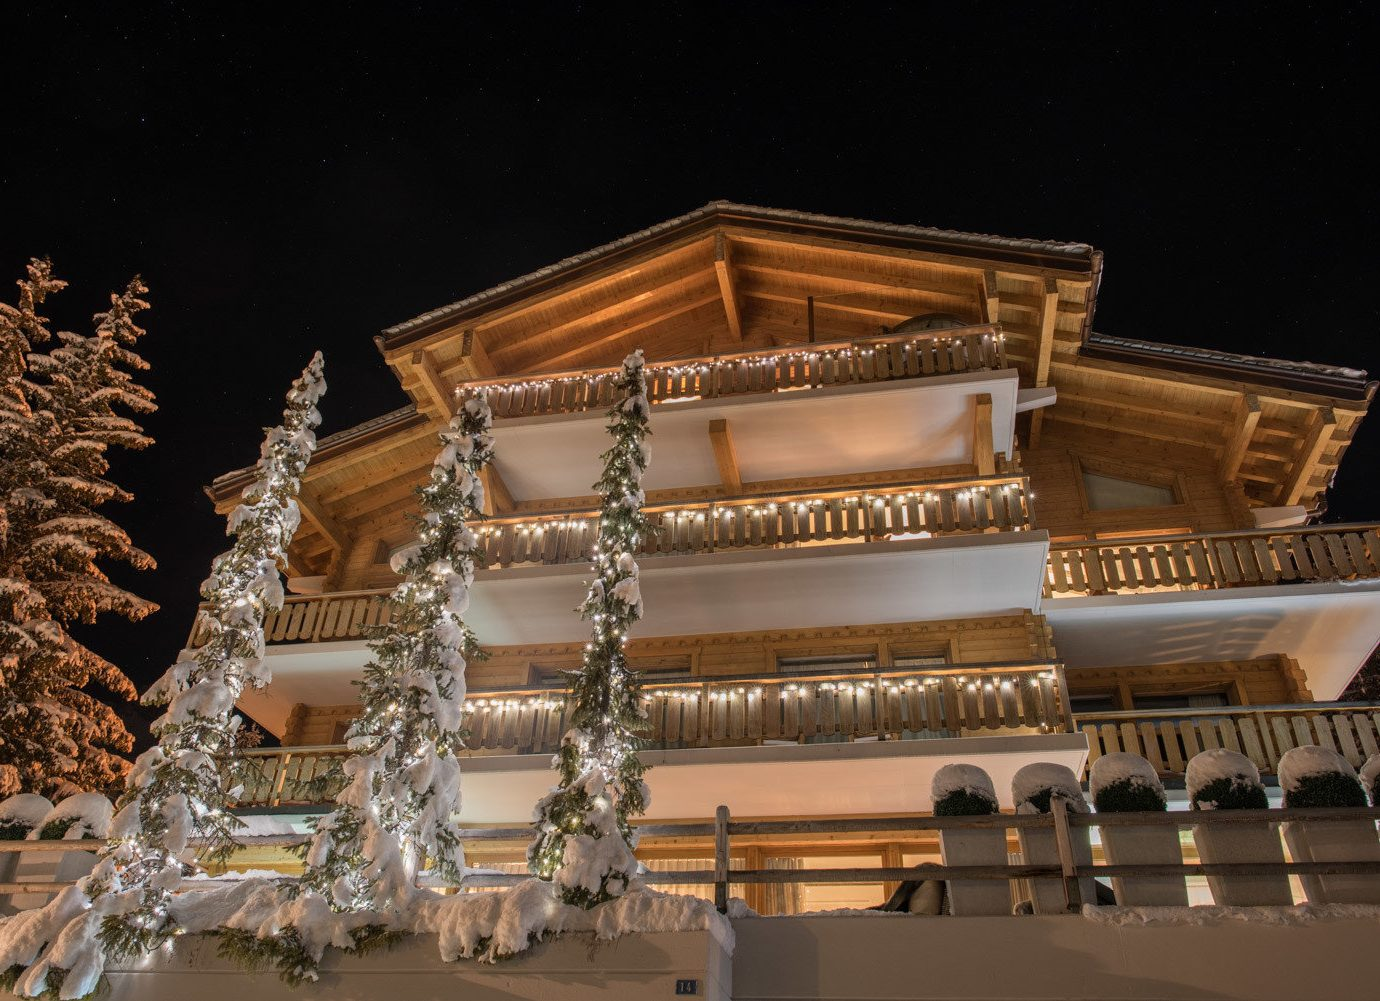 Hotels Luxury Travel Mountains + Skiing night lighting several